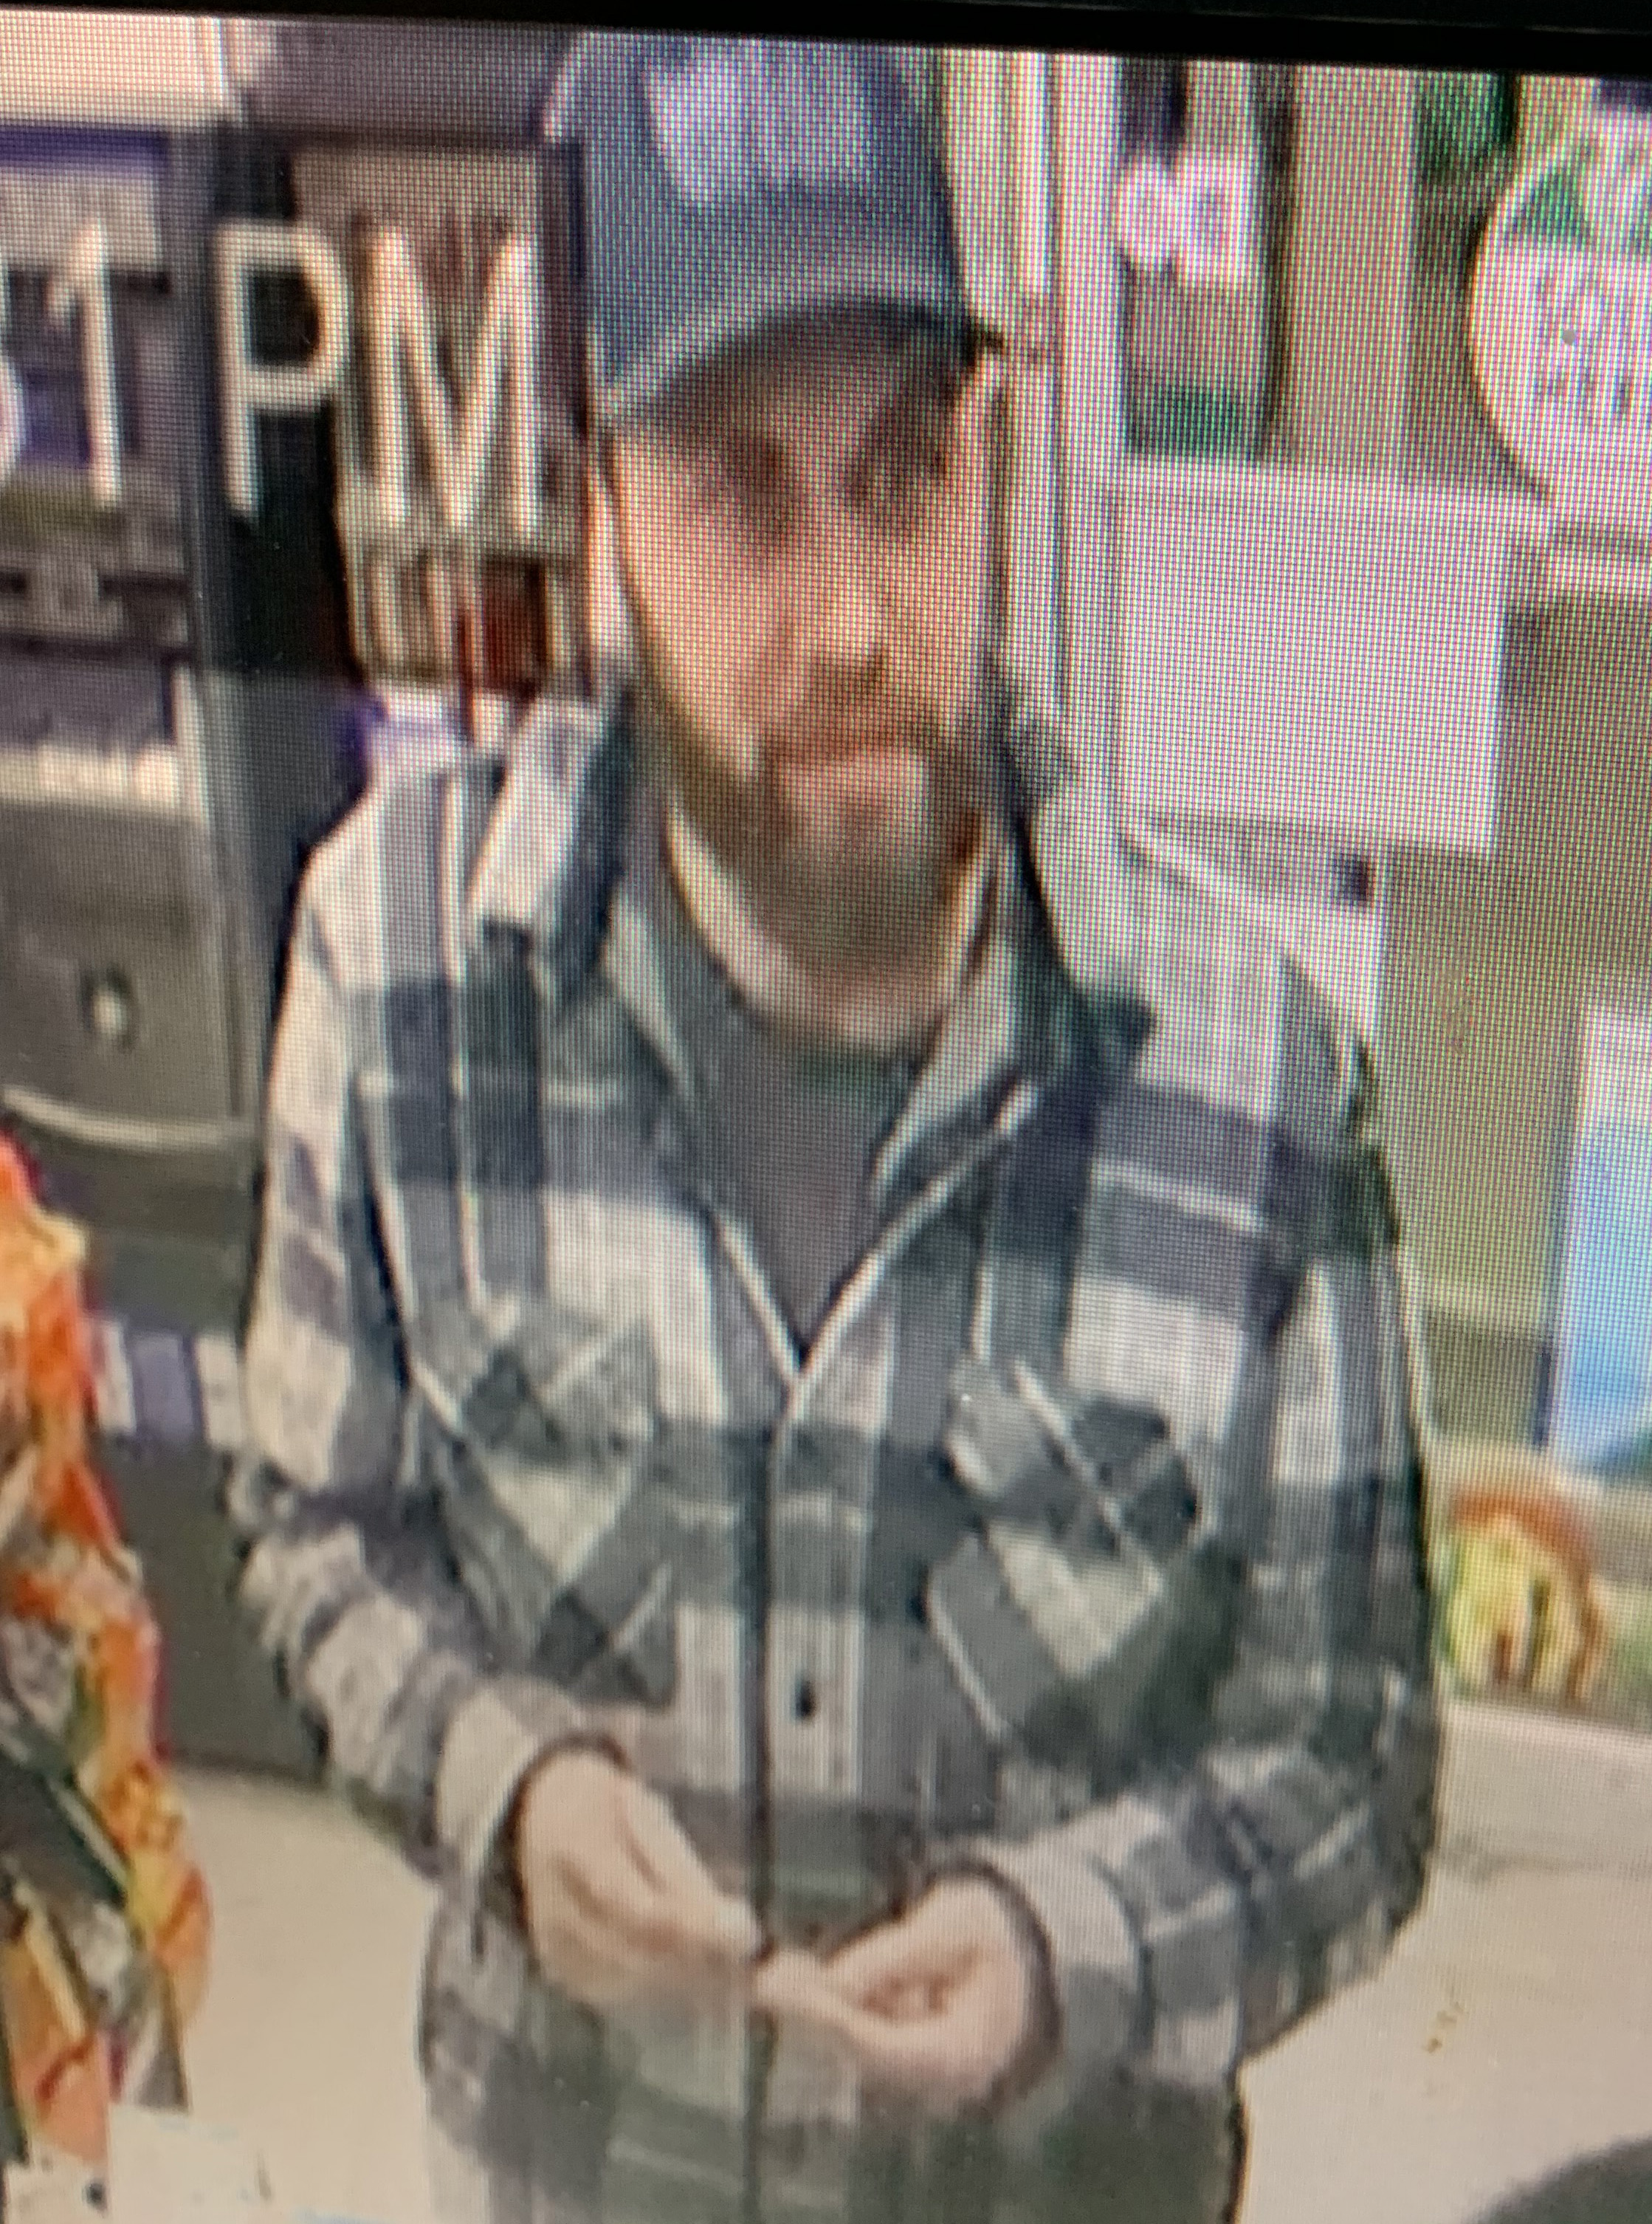 12-11-19 Robbery BP Gas Station Photo 1